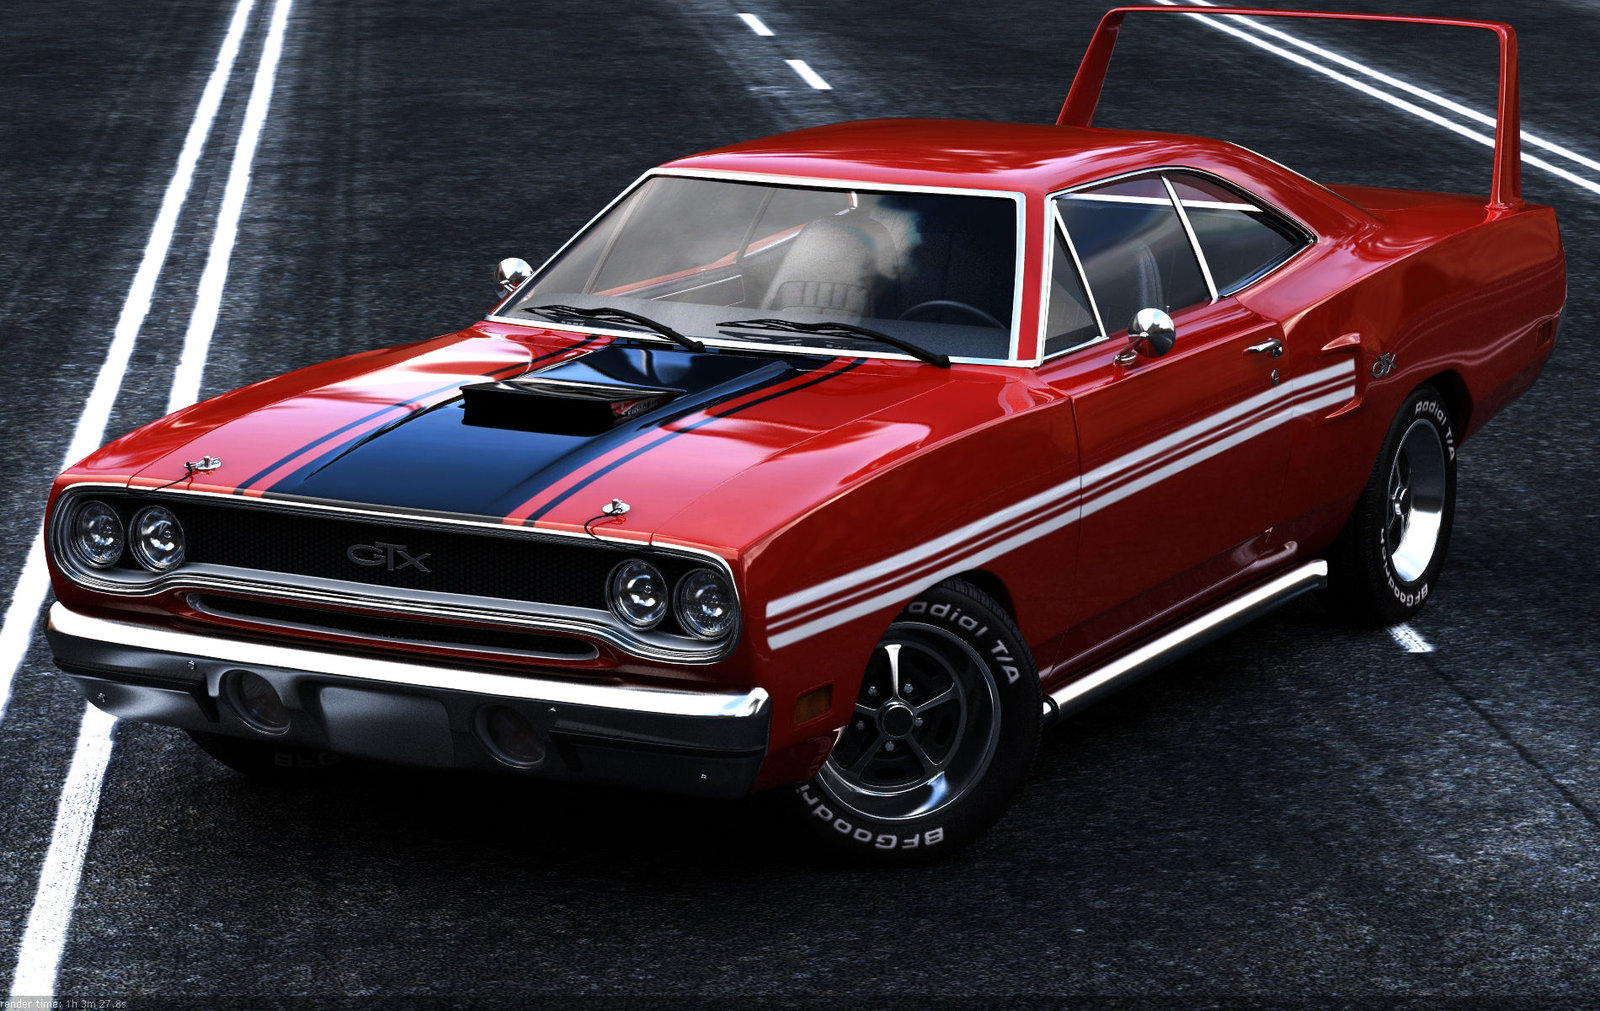 Muscle Car 1970 Plymouth GTX by TheCarloos on DeviantArt